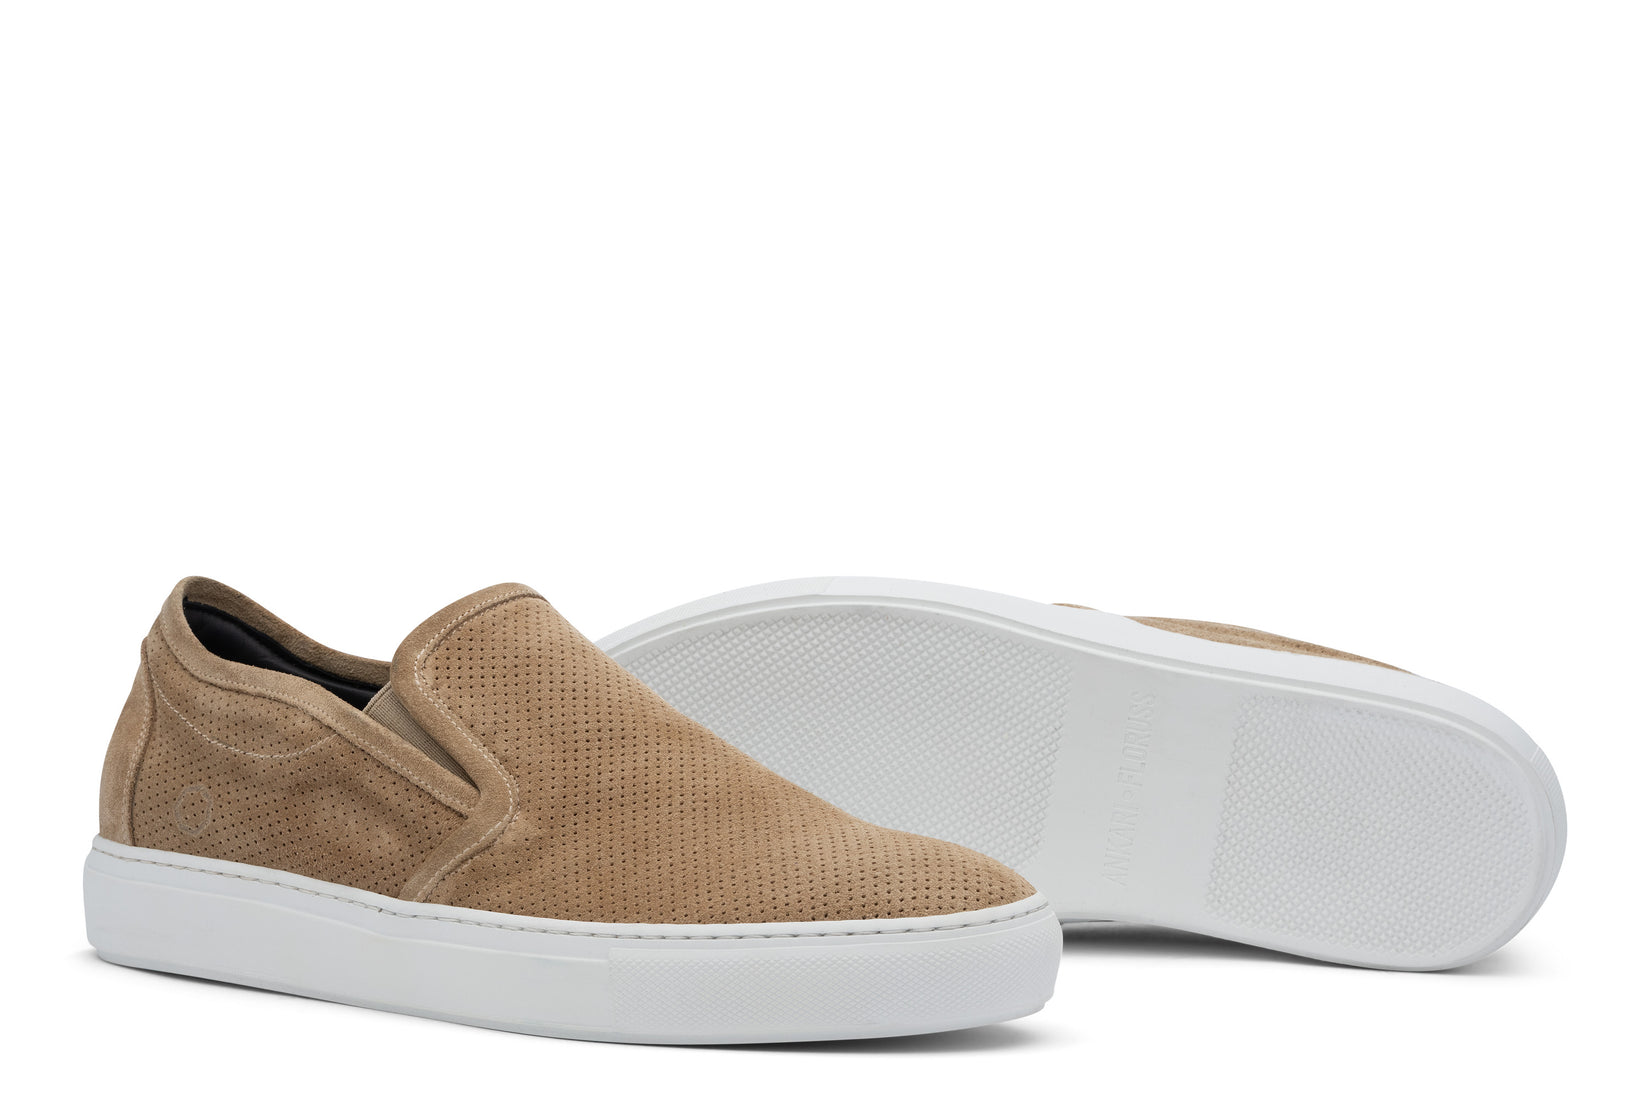 Tuesday Slip On Sneaker Beige